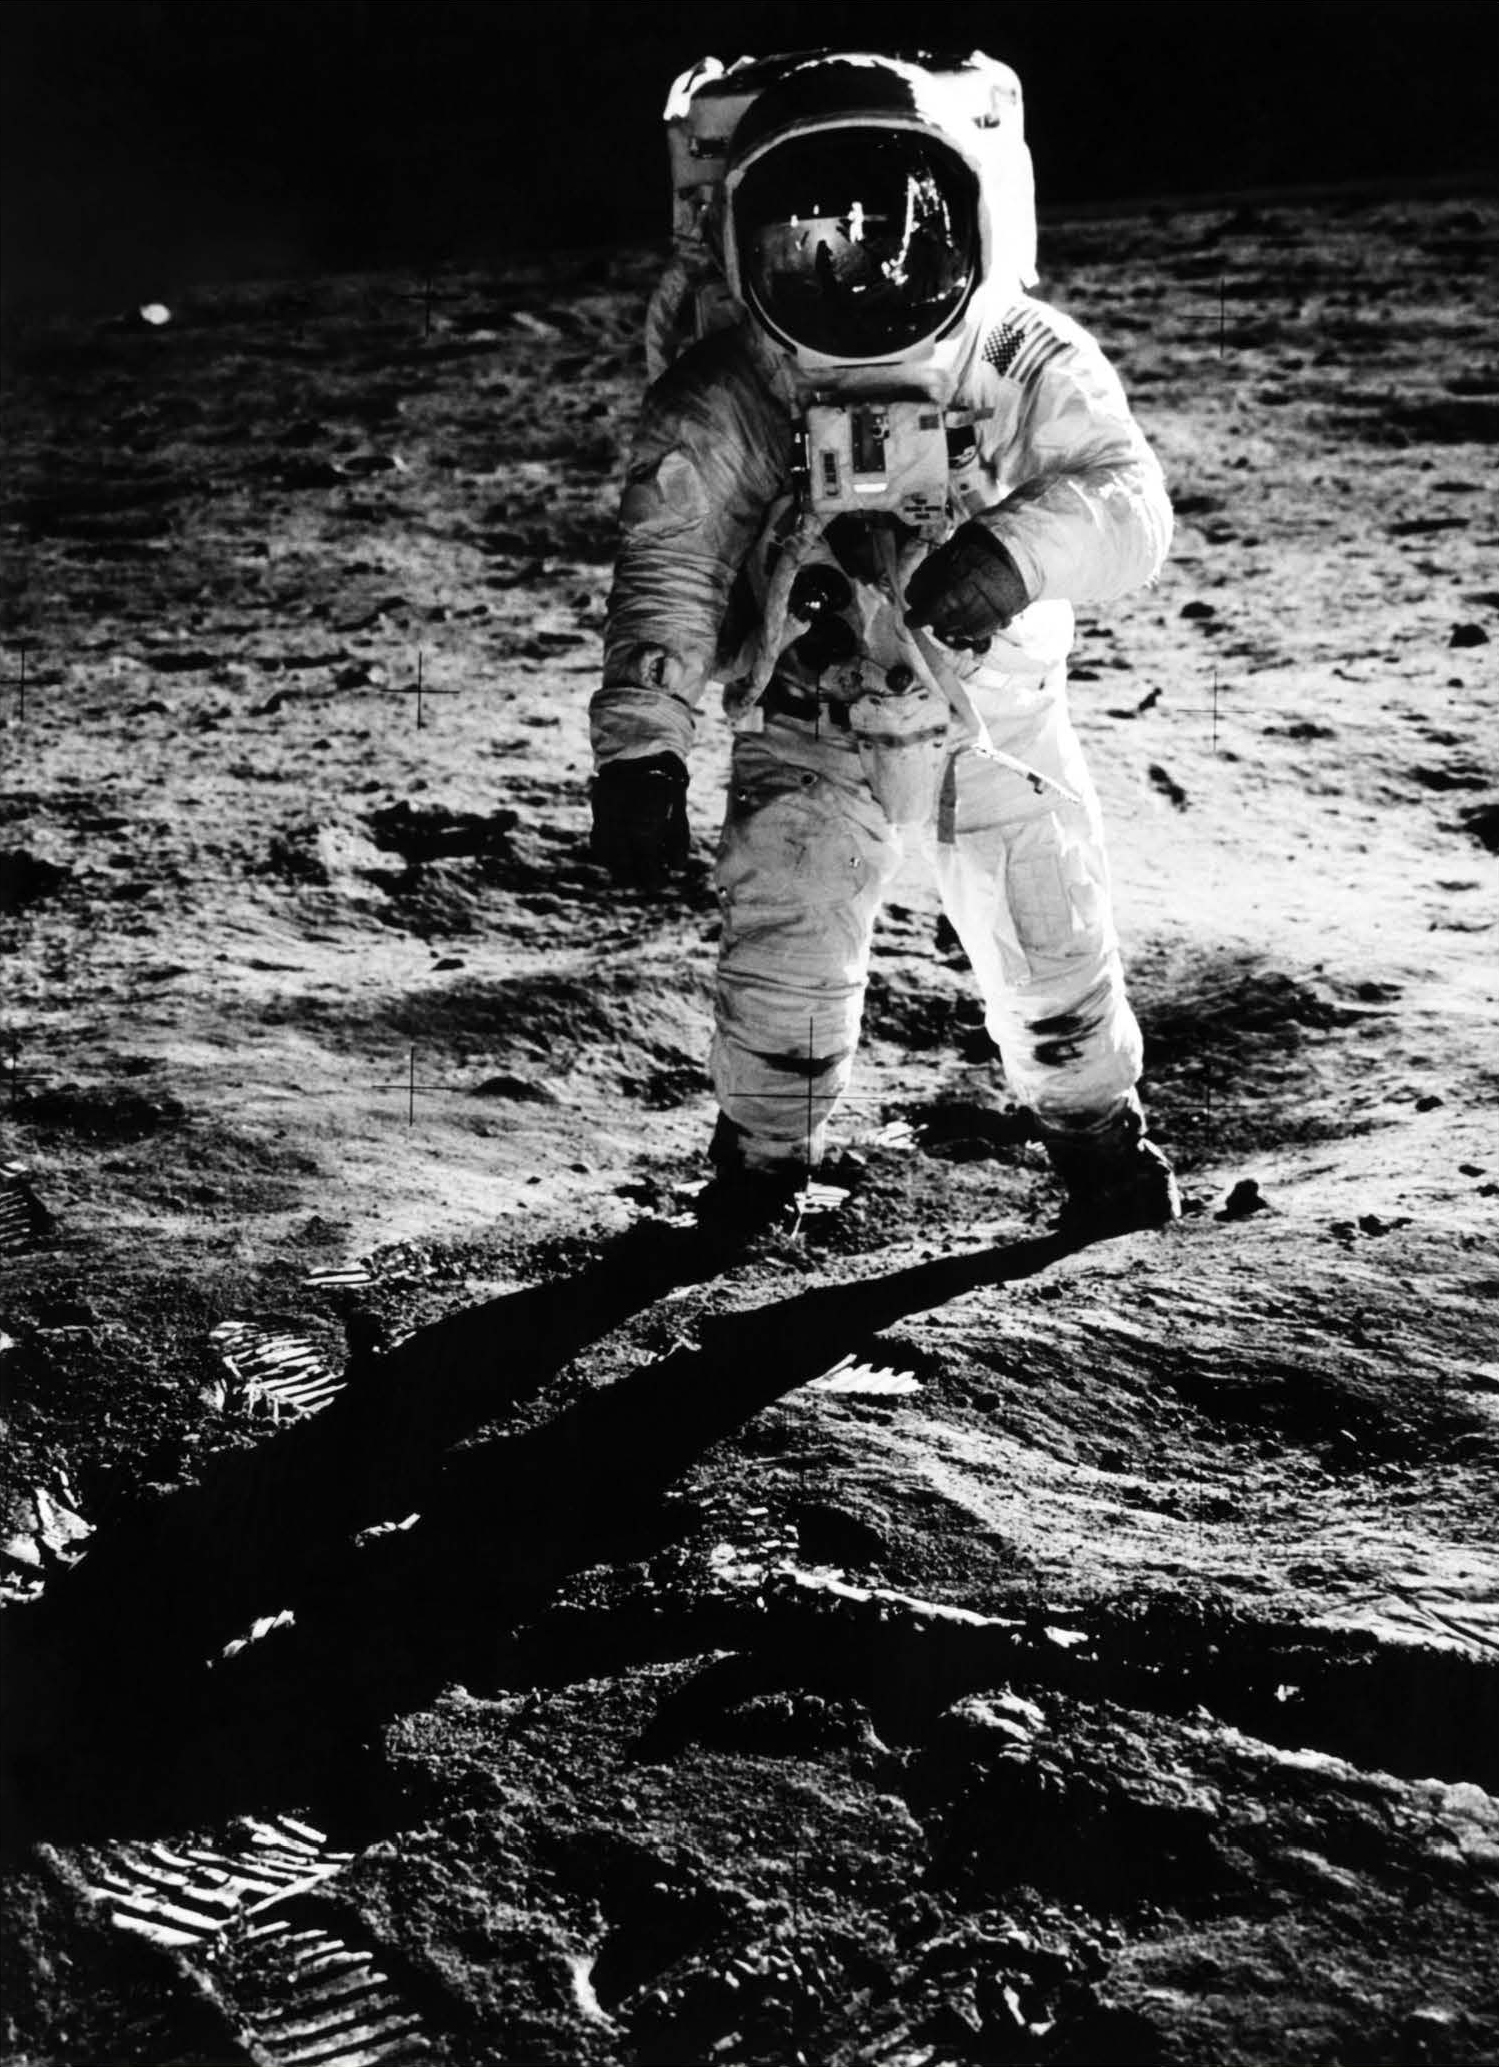 Hasselblad moon landing photos reissued to commemorate 50th anniversary | Digital Camera World